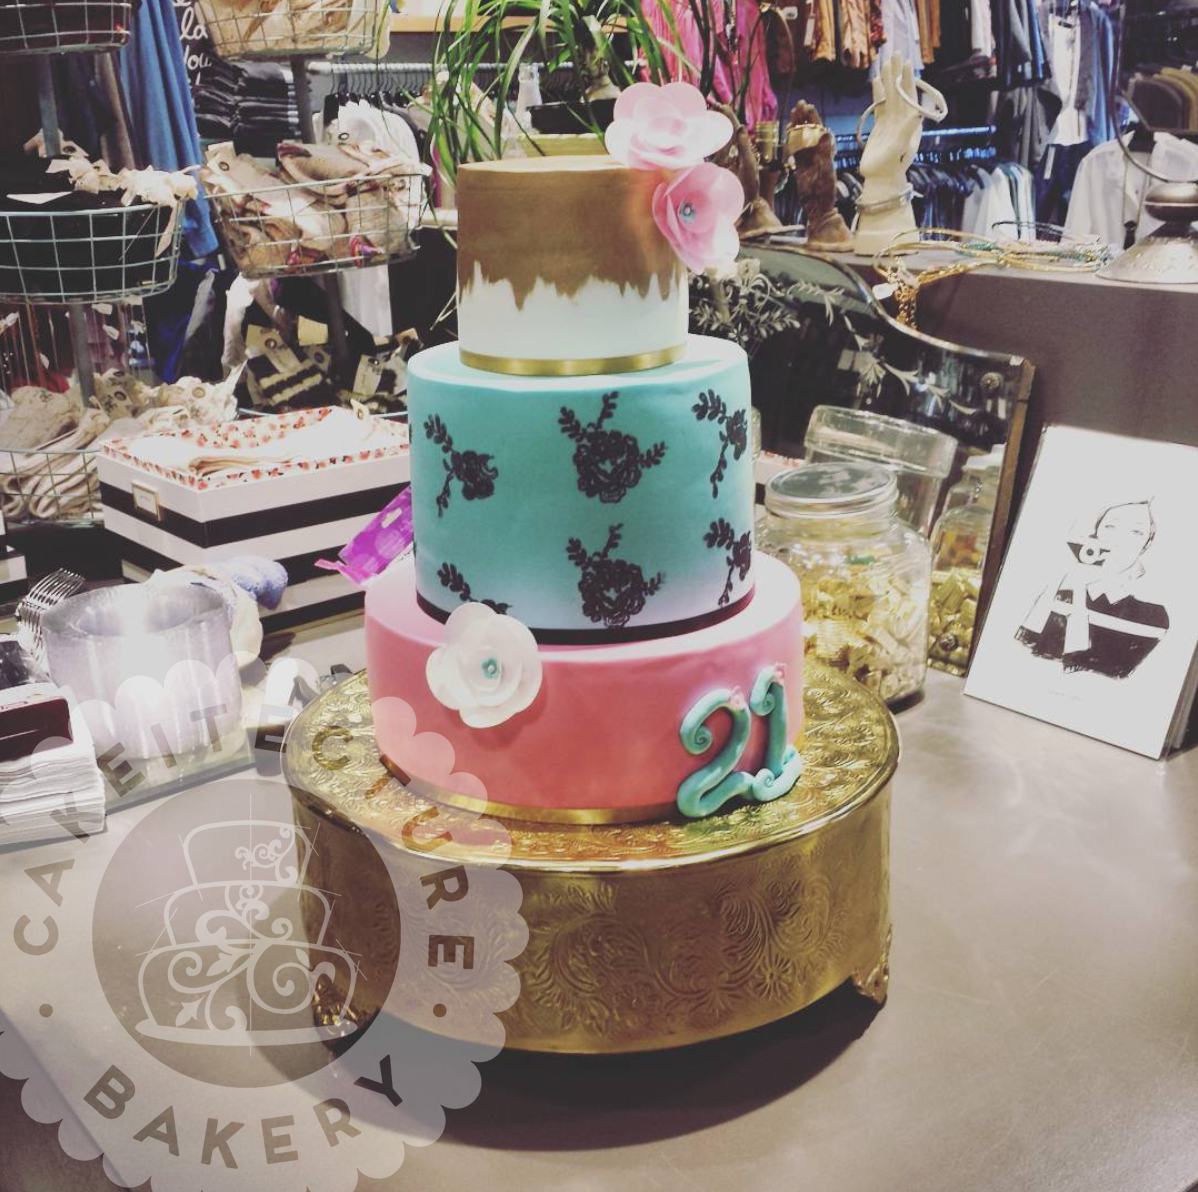 Cakeitecture Bakery stacked22.jpg